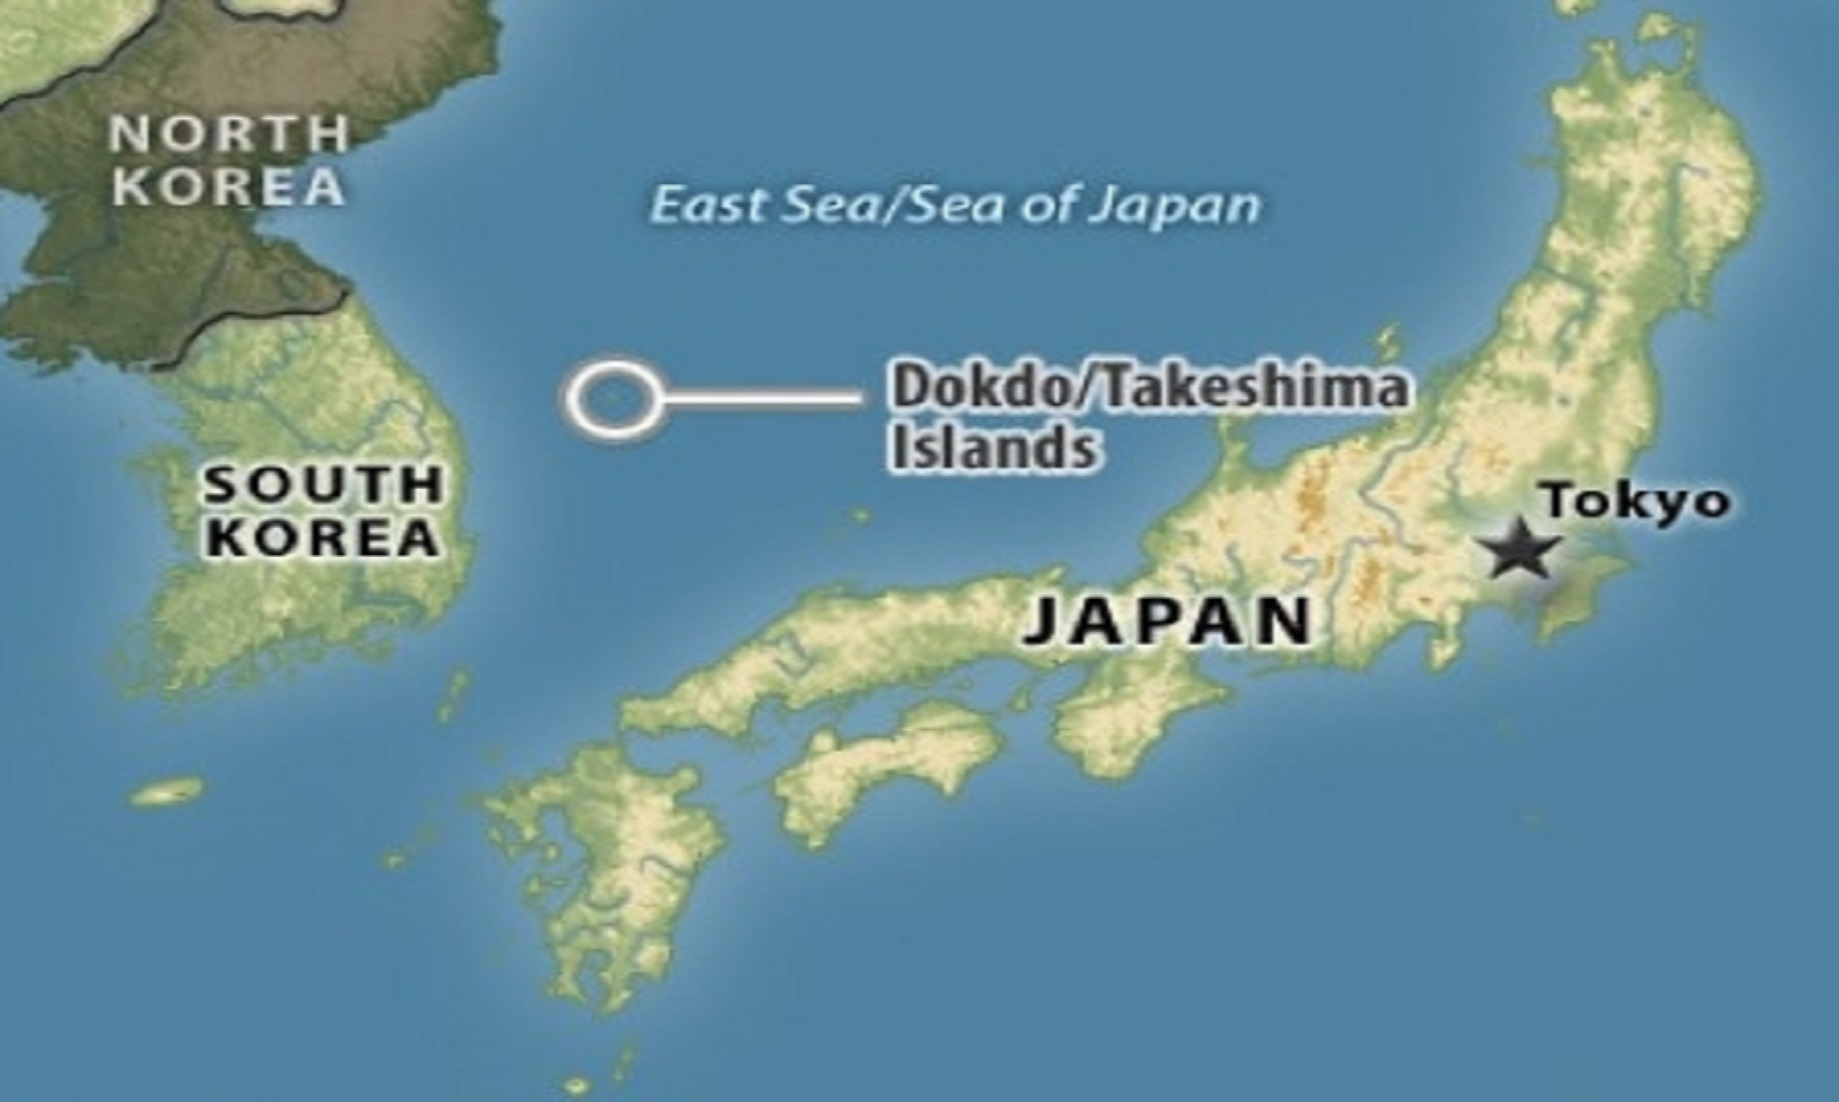 Japan Asserting Claim Over Disputed Islets Draws Ire Of S. Korea